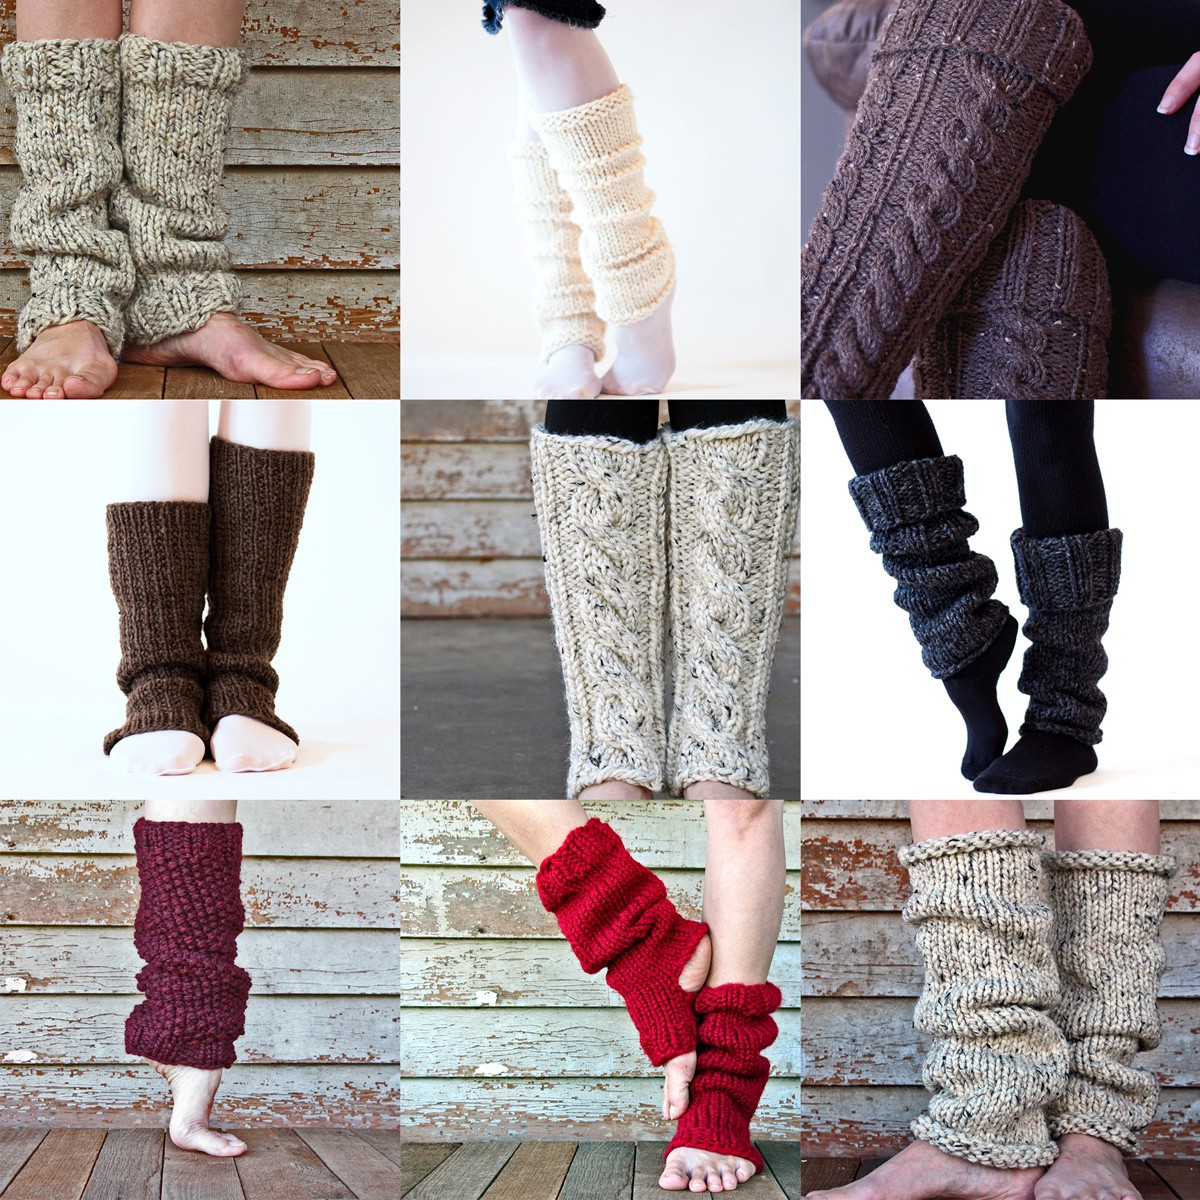 Top 10 Leg Warmer Knitting Patterns by Brome Fields - Brome Fields